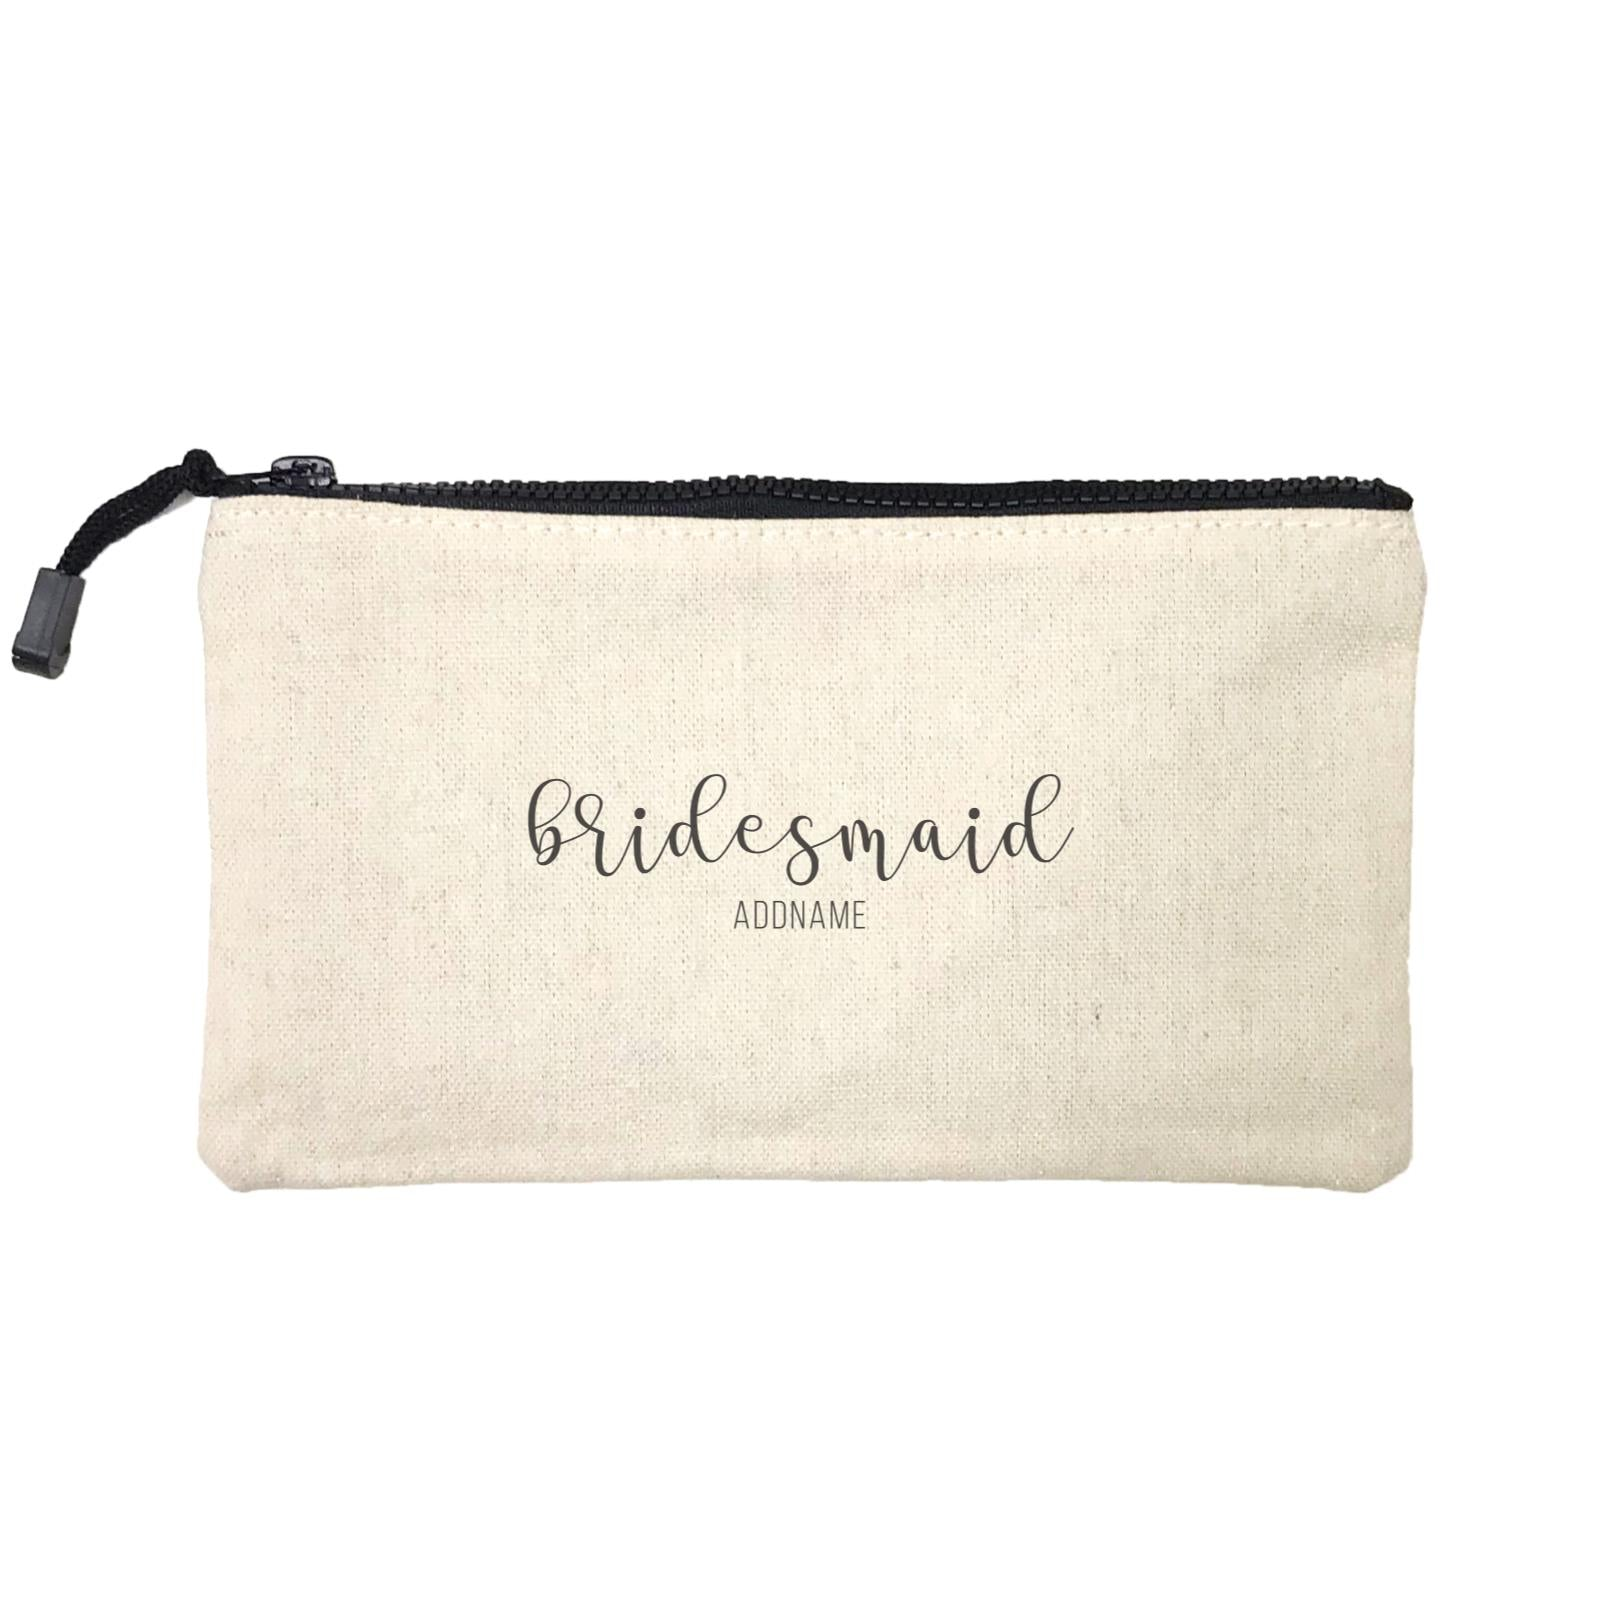 Bridesmaid Calligraphy Bridesmaid Subtle Addname Mini Accessories Stationery Pouch